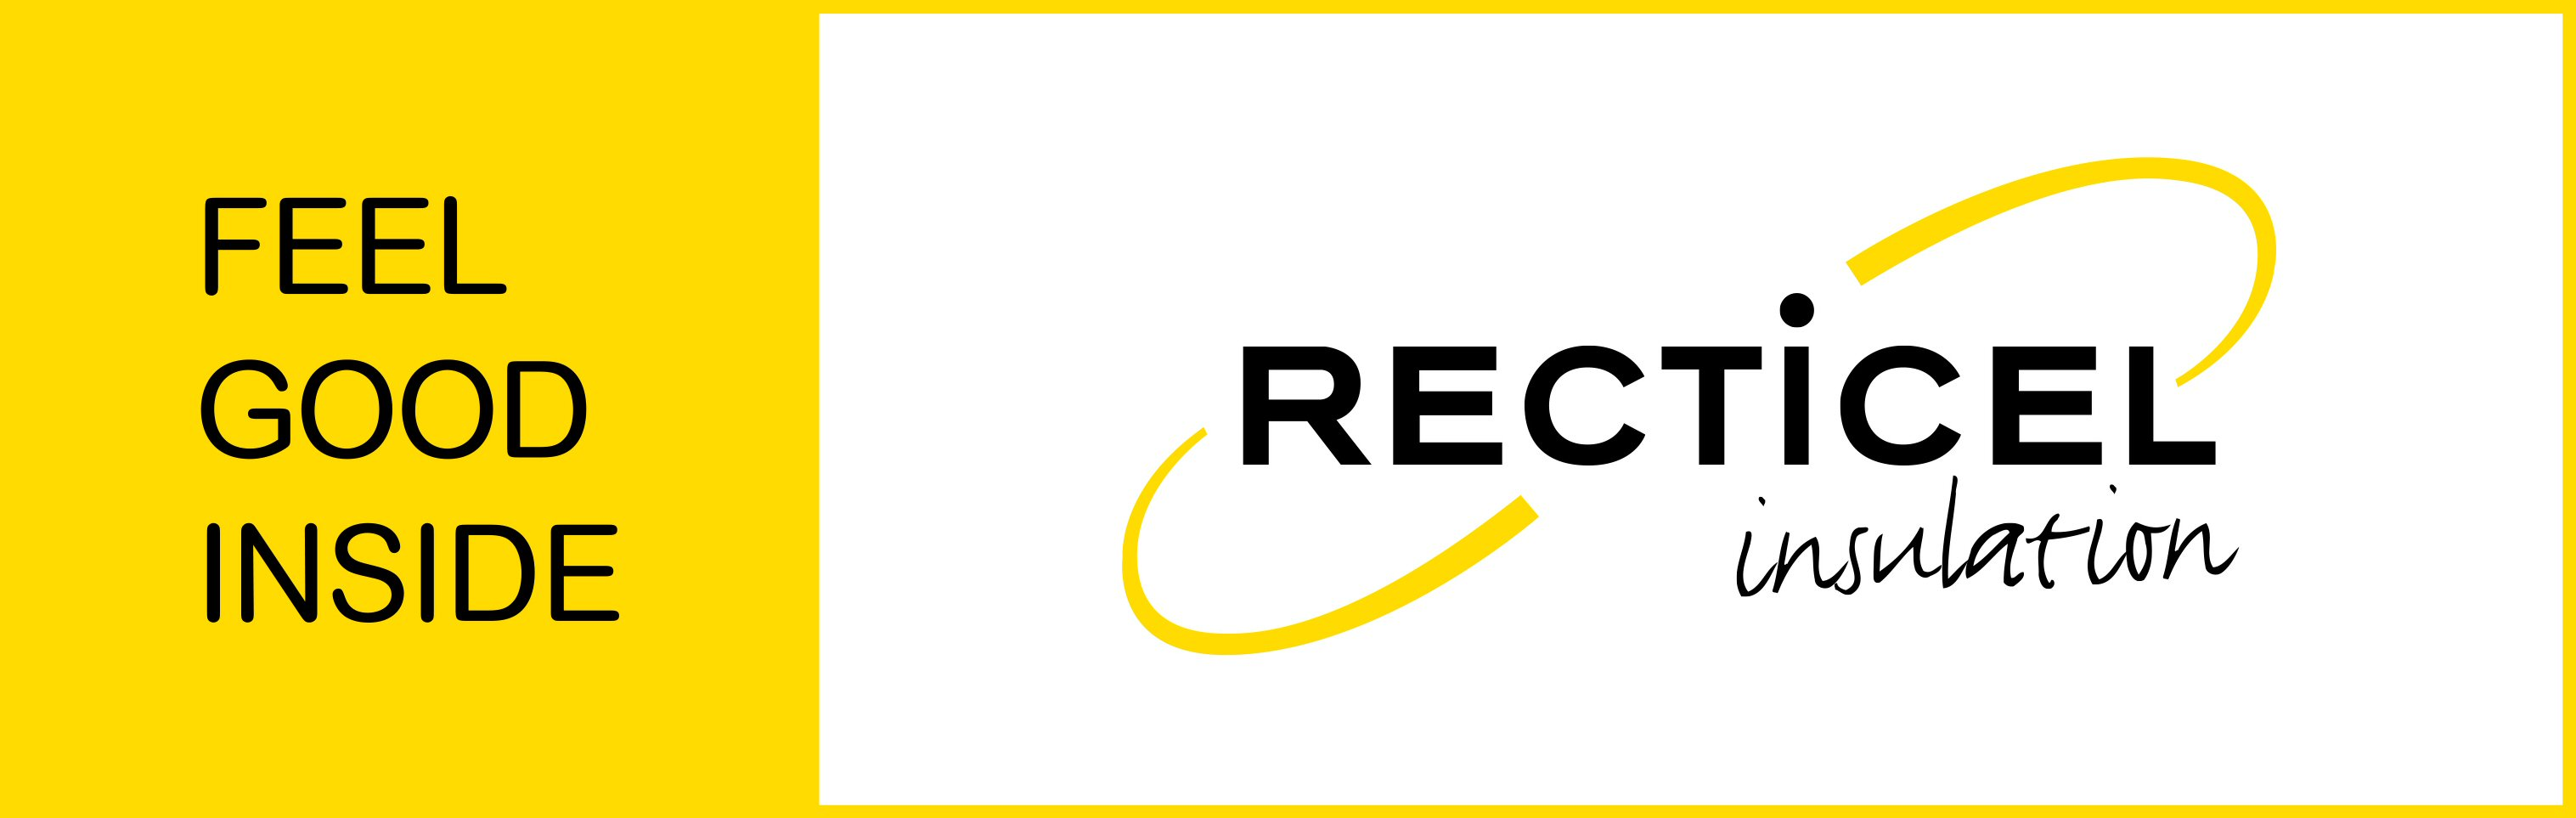 https://www.recticelinsulation.com/be-nl/home